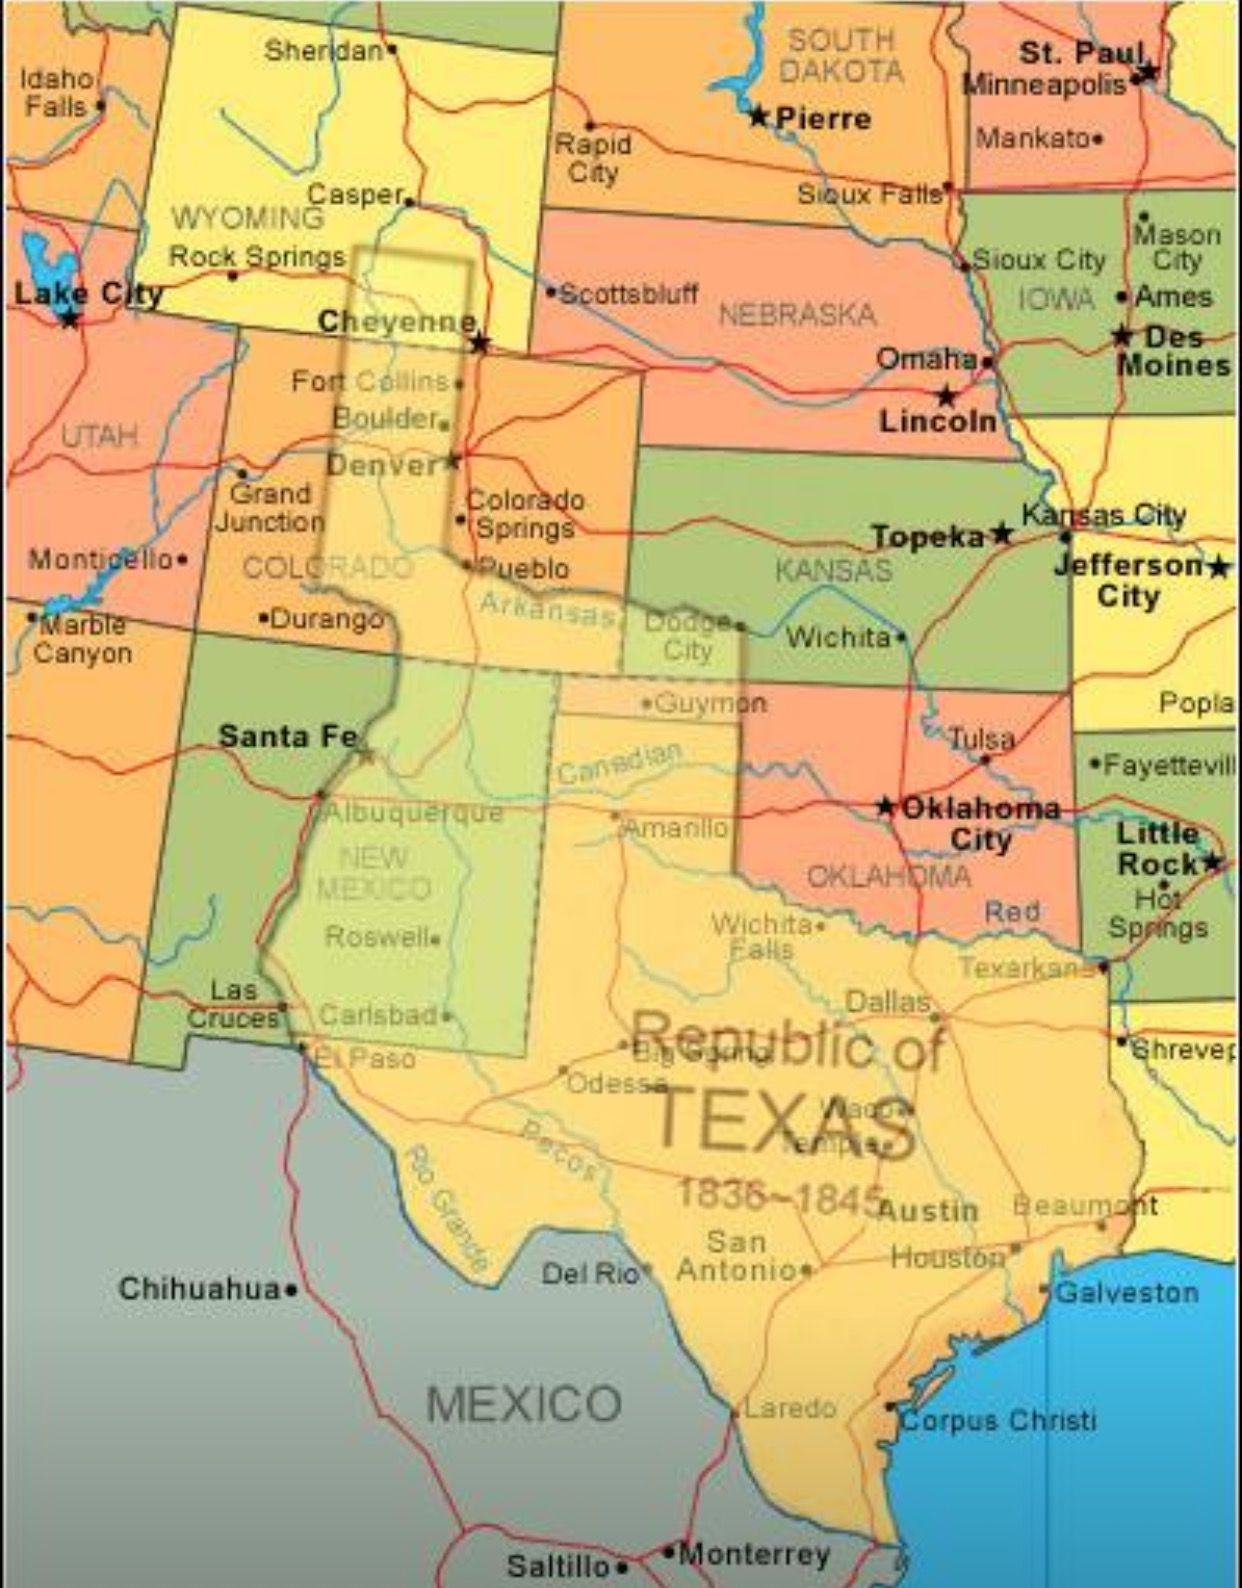 Map Showing Current Usa With The Republic Of Texas Superimposed - Where Is El Paso Texas On The Map